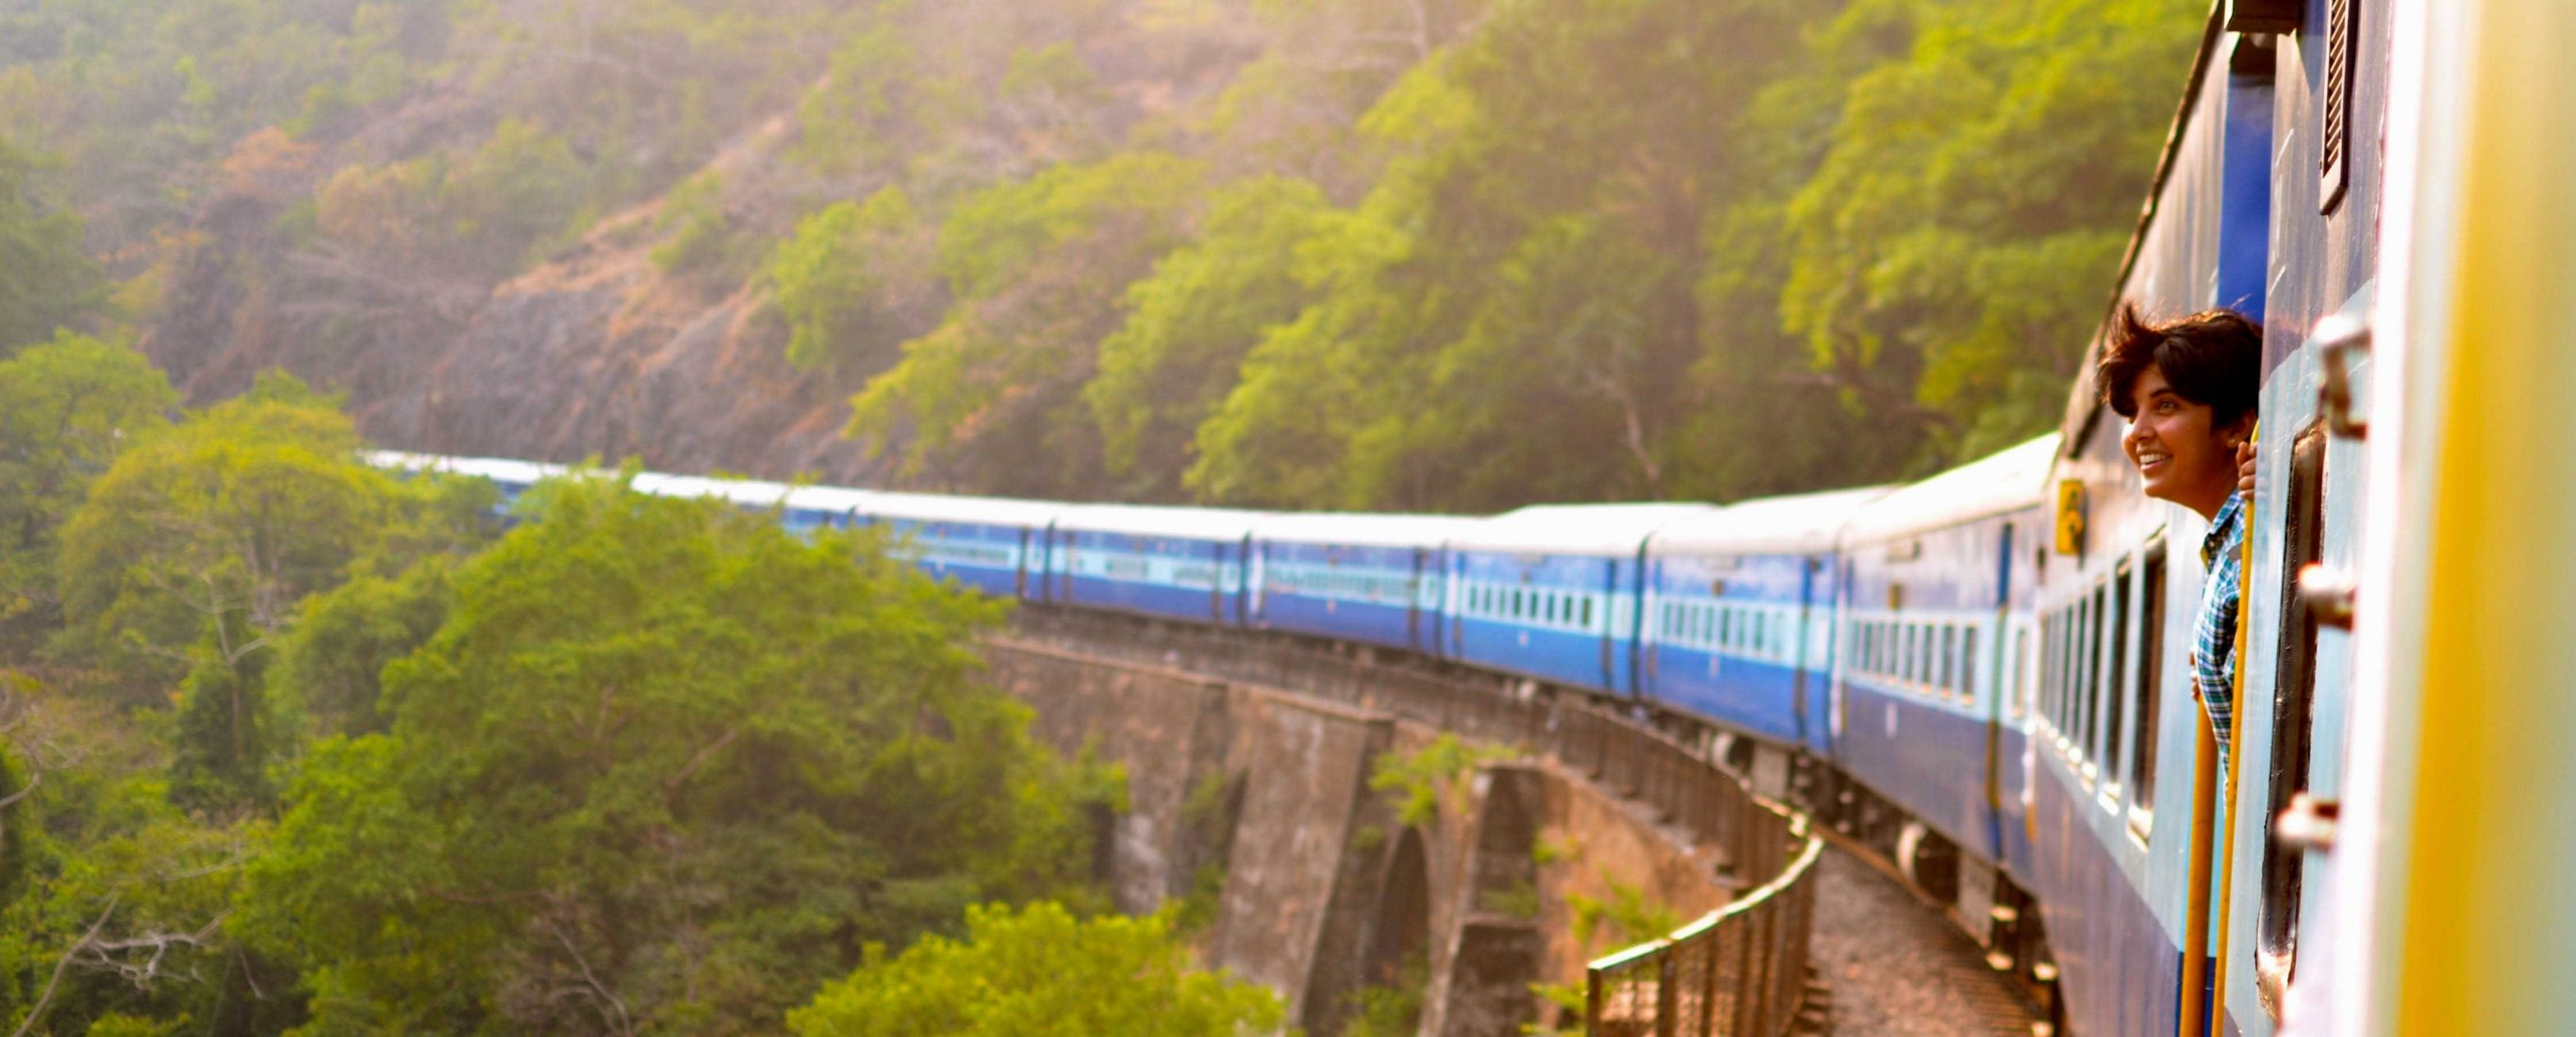 Woman staring out the window of a train passing through a verdant mountainside on a sunny day